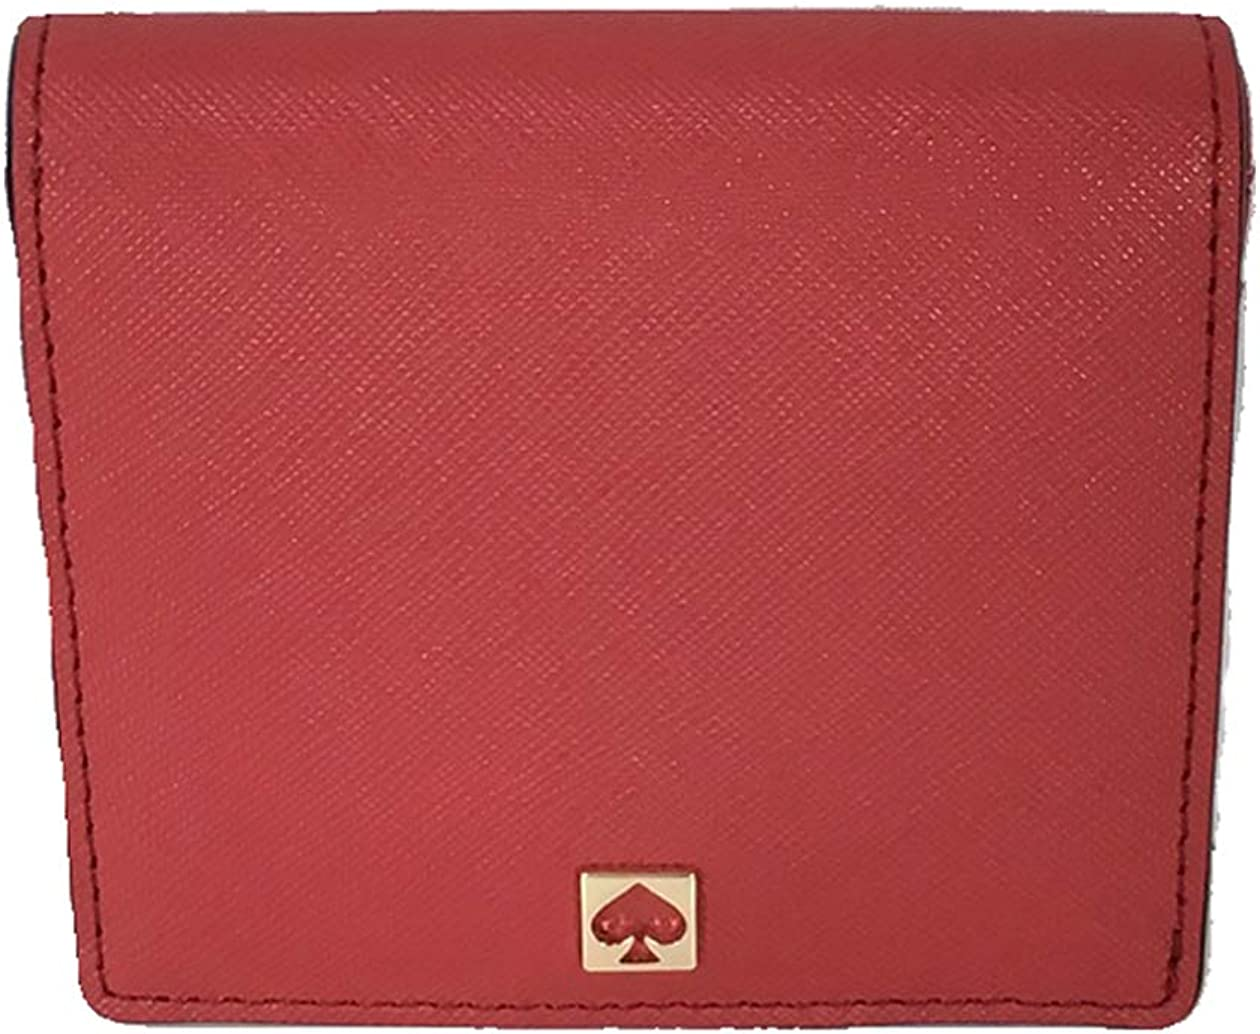 Kate Spade Cove Street Serenade Leather Mini Wallet Card Case, Red Carpet